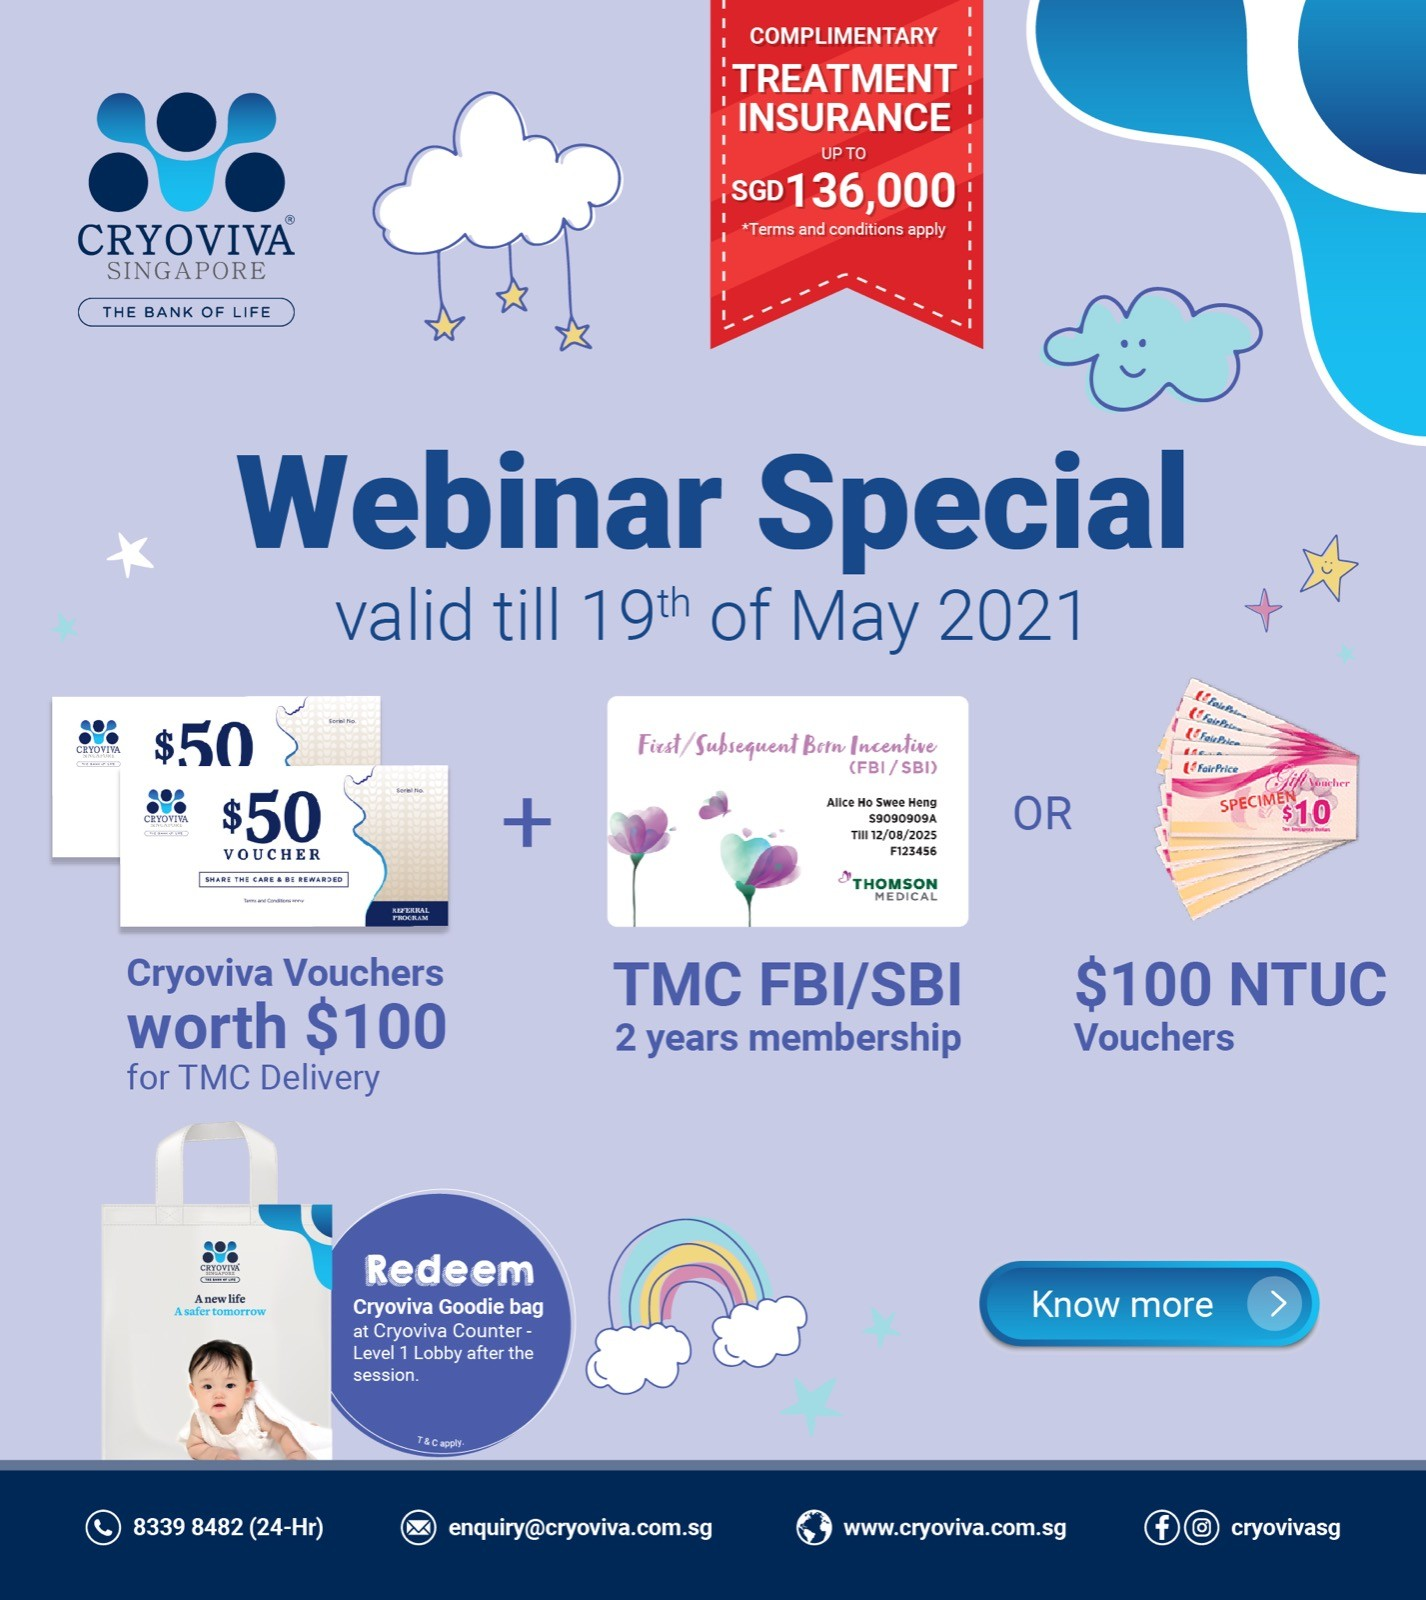 Webinar Exclusive Benefits